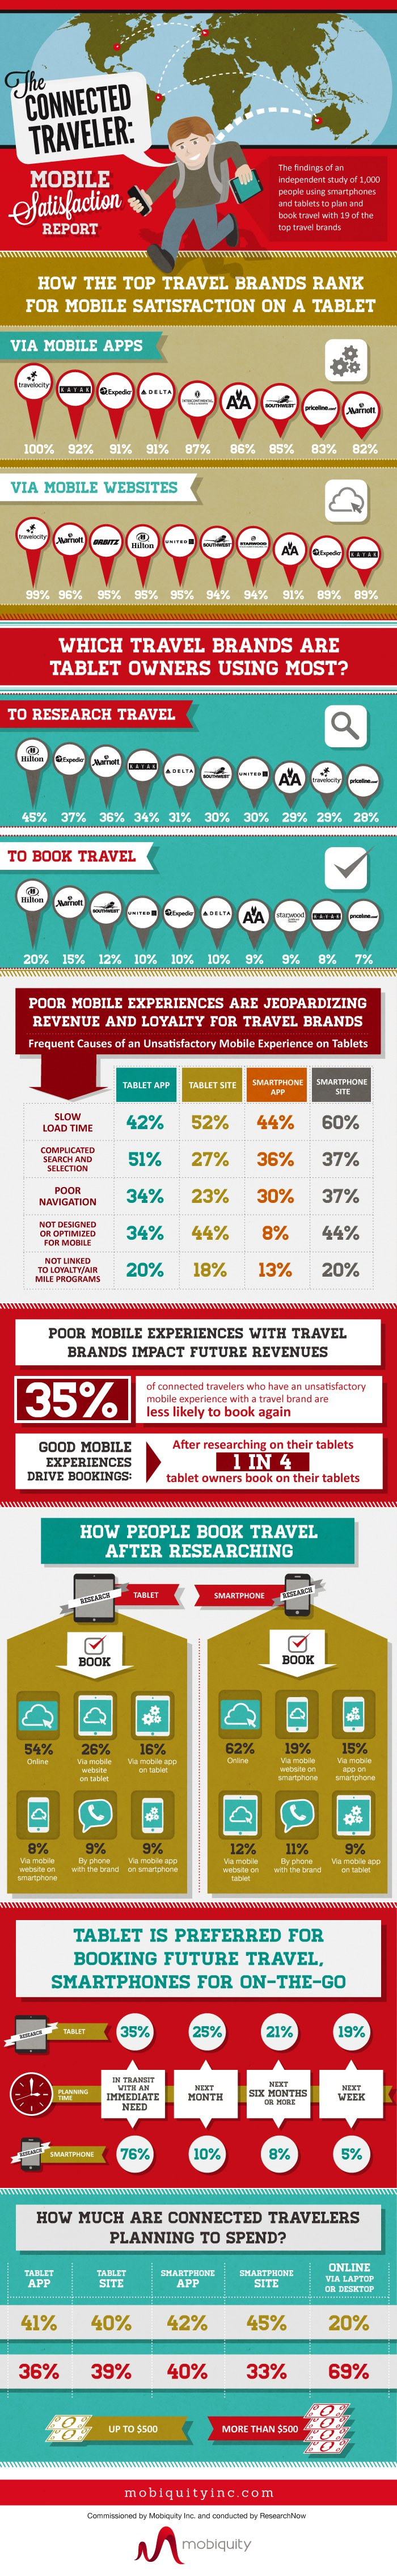 The connected traveler infographic